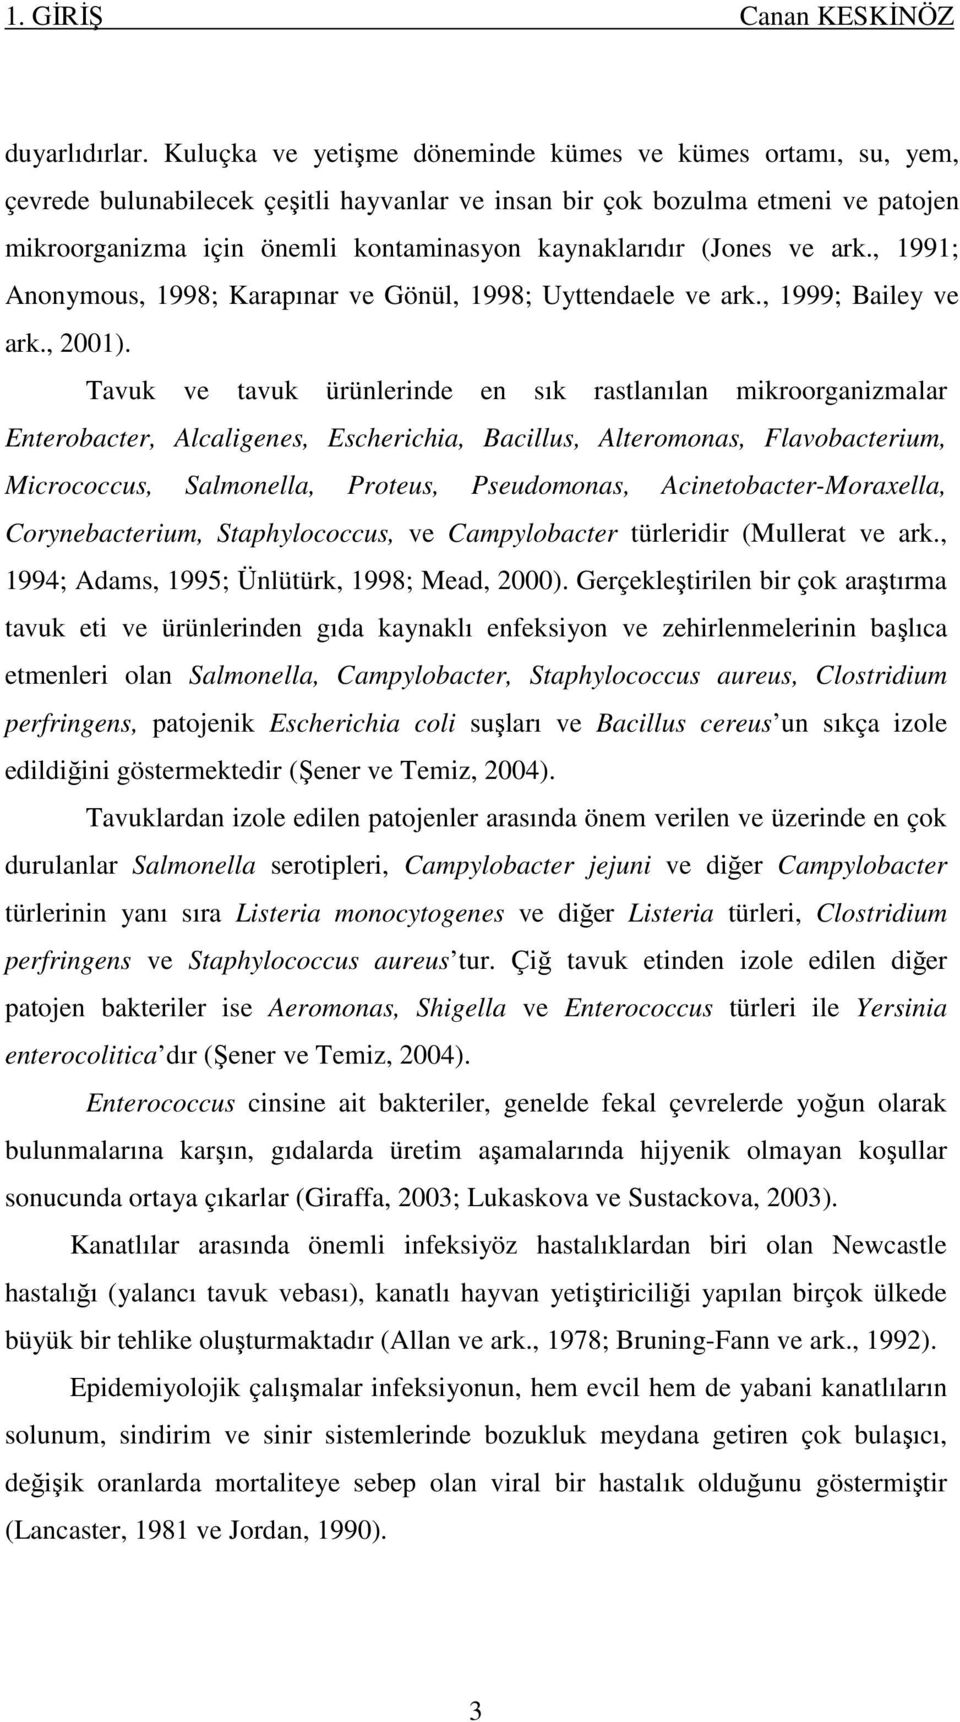 (Jones ve ark., 1991; Anonymous, 1998; Karapınar ve Gönül, 1998; Uyttendaele ve ark., 1999; Bailey ve ark., 2001).